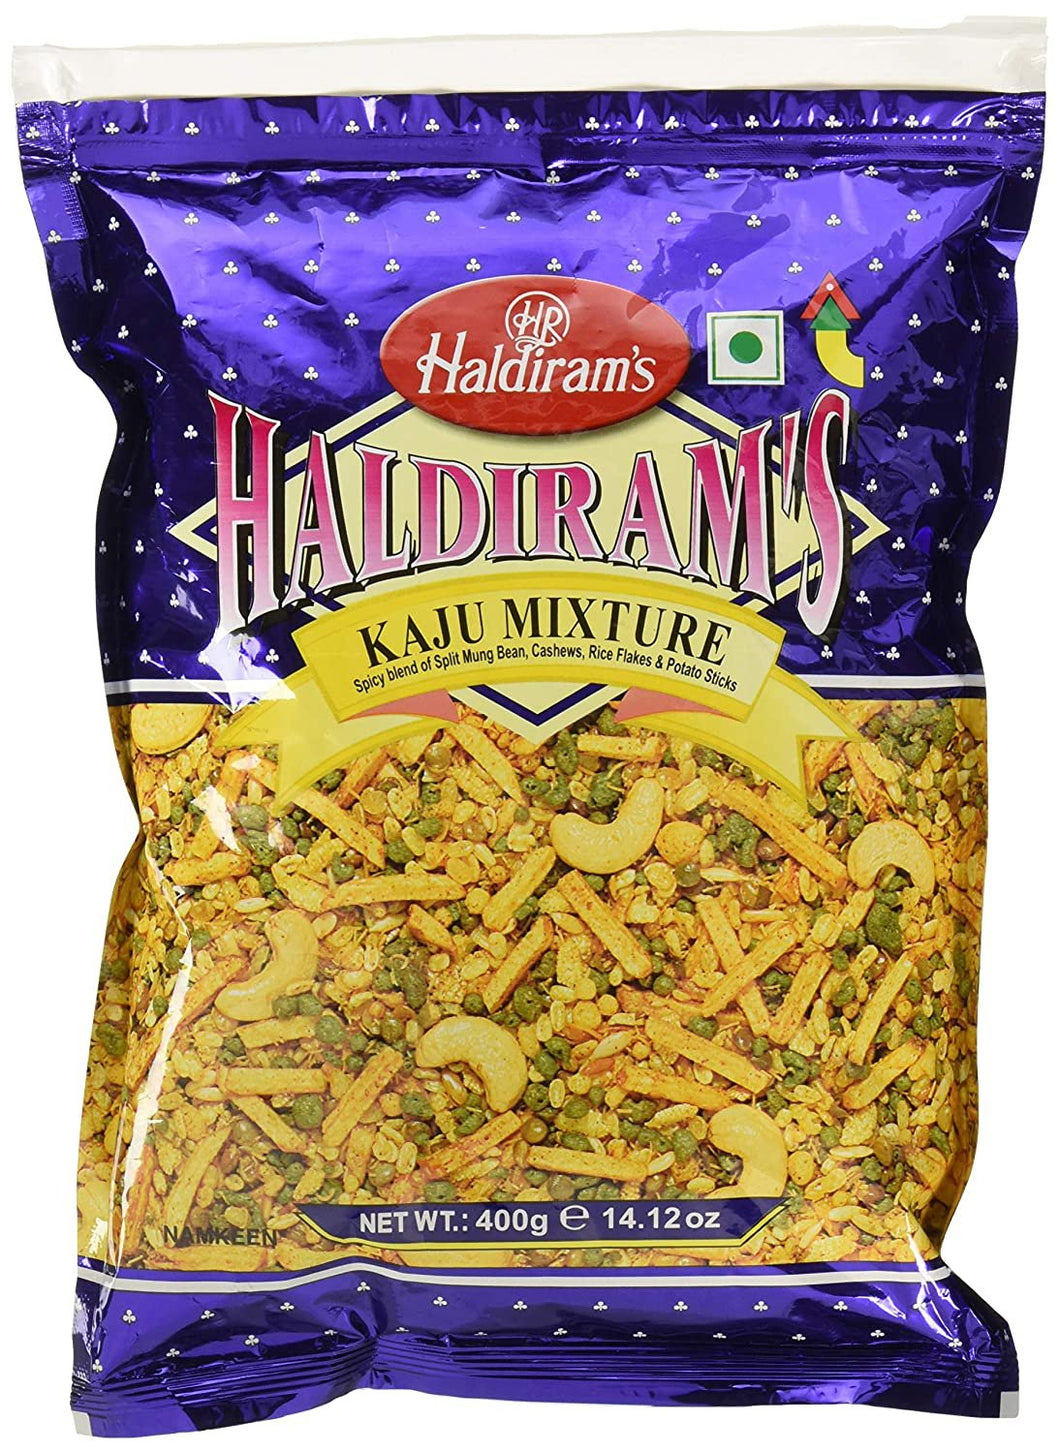 Haldiram's Kaju Mixture